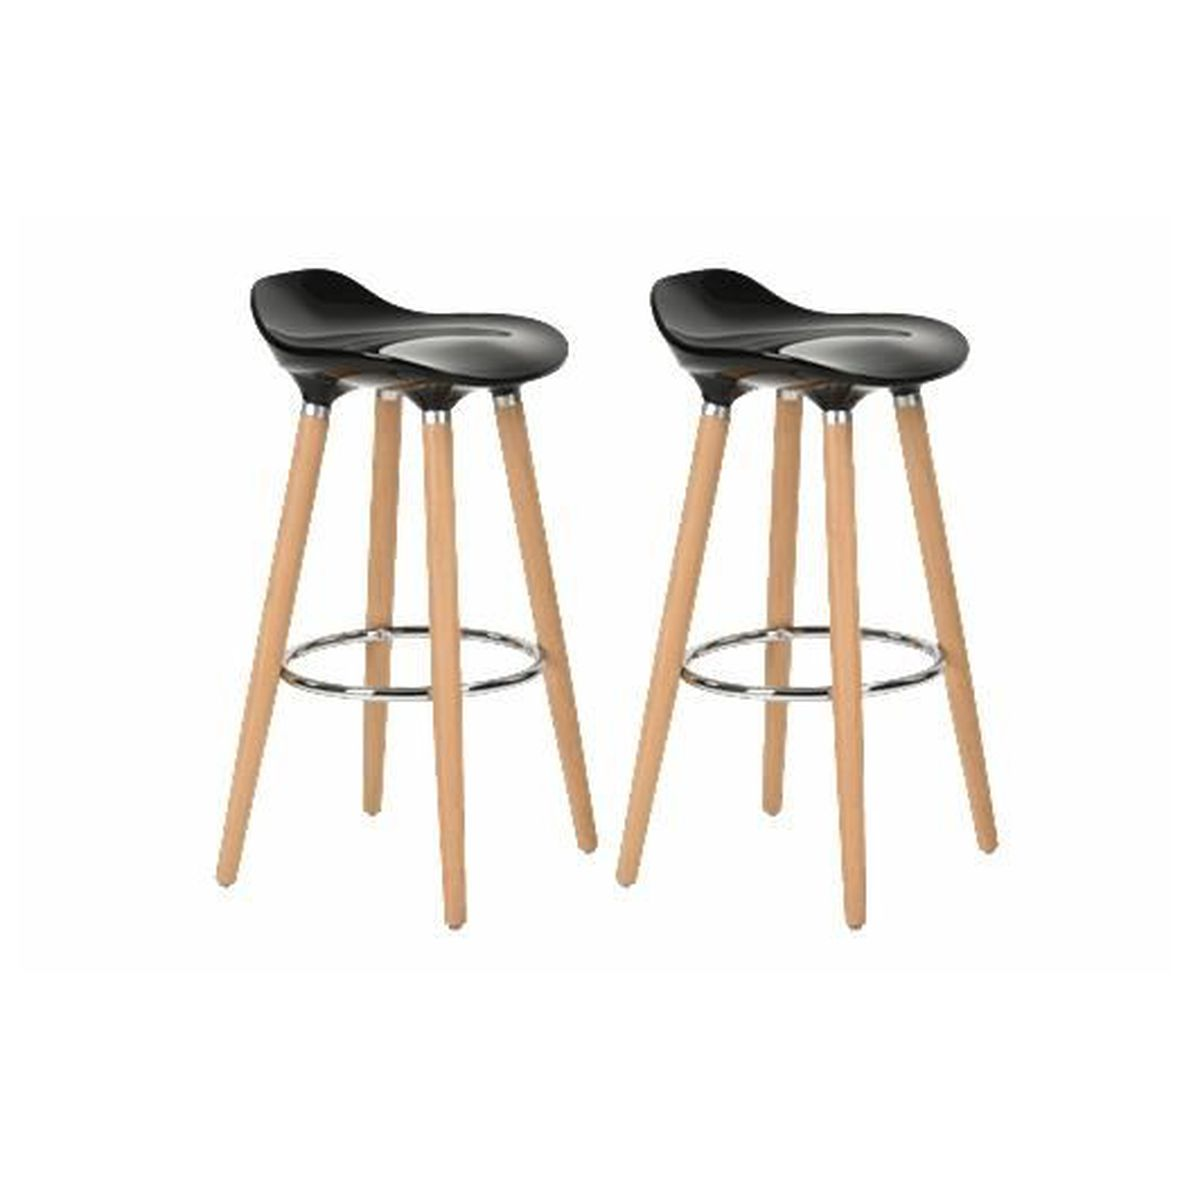 tabouret de bar noir achat vente tabouret de bar noir pas cher cdiscount. Black Bedroom Furniture Sets. Home Design Ideas